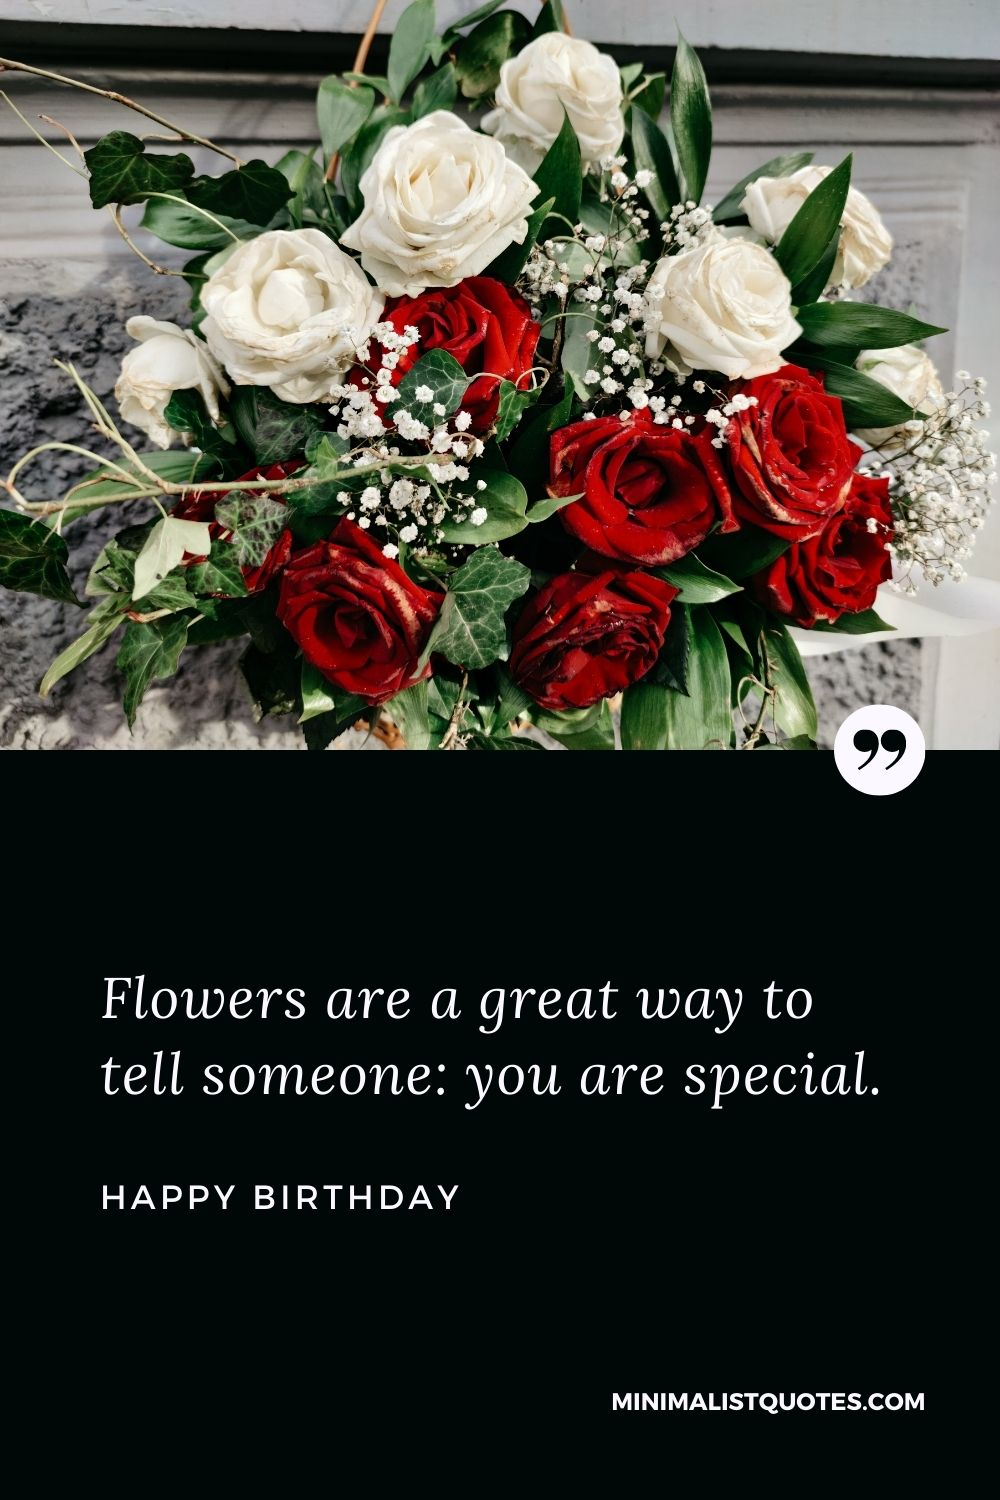 Birthday Wish & Message With Image: Flowers are a great way to tell someone: you are special. Happy Birthday!